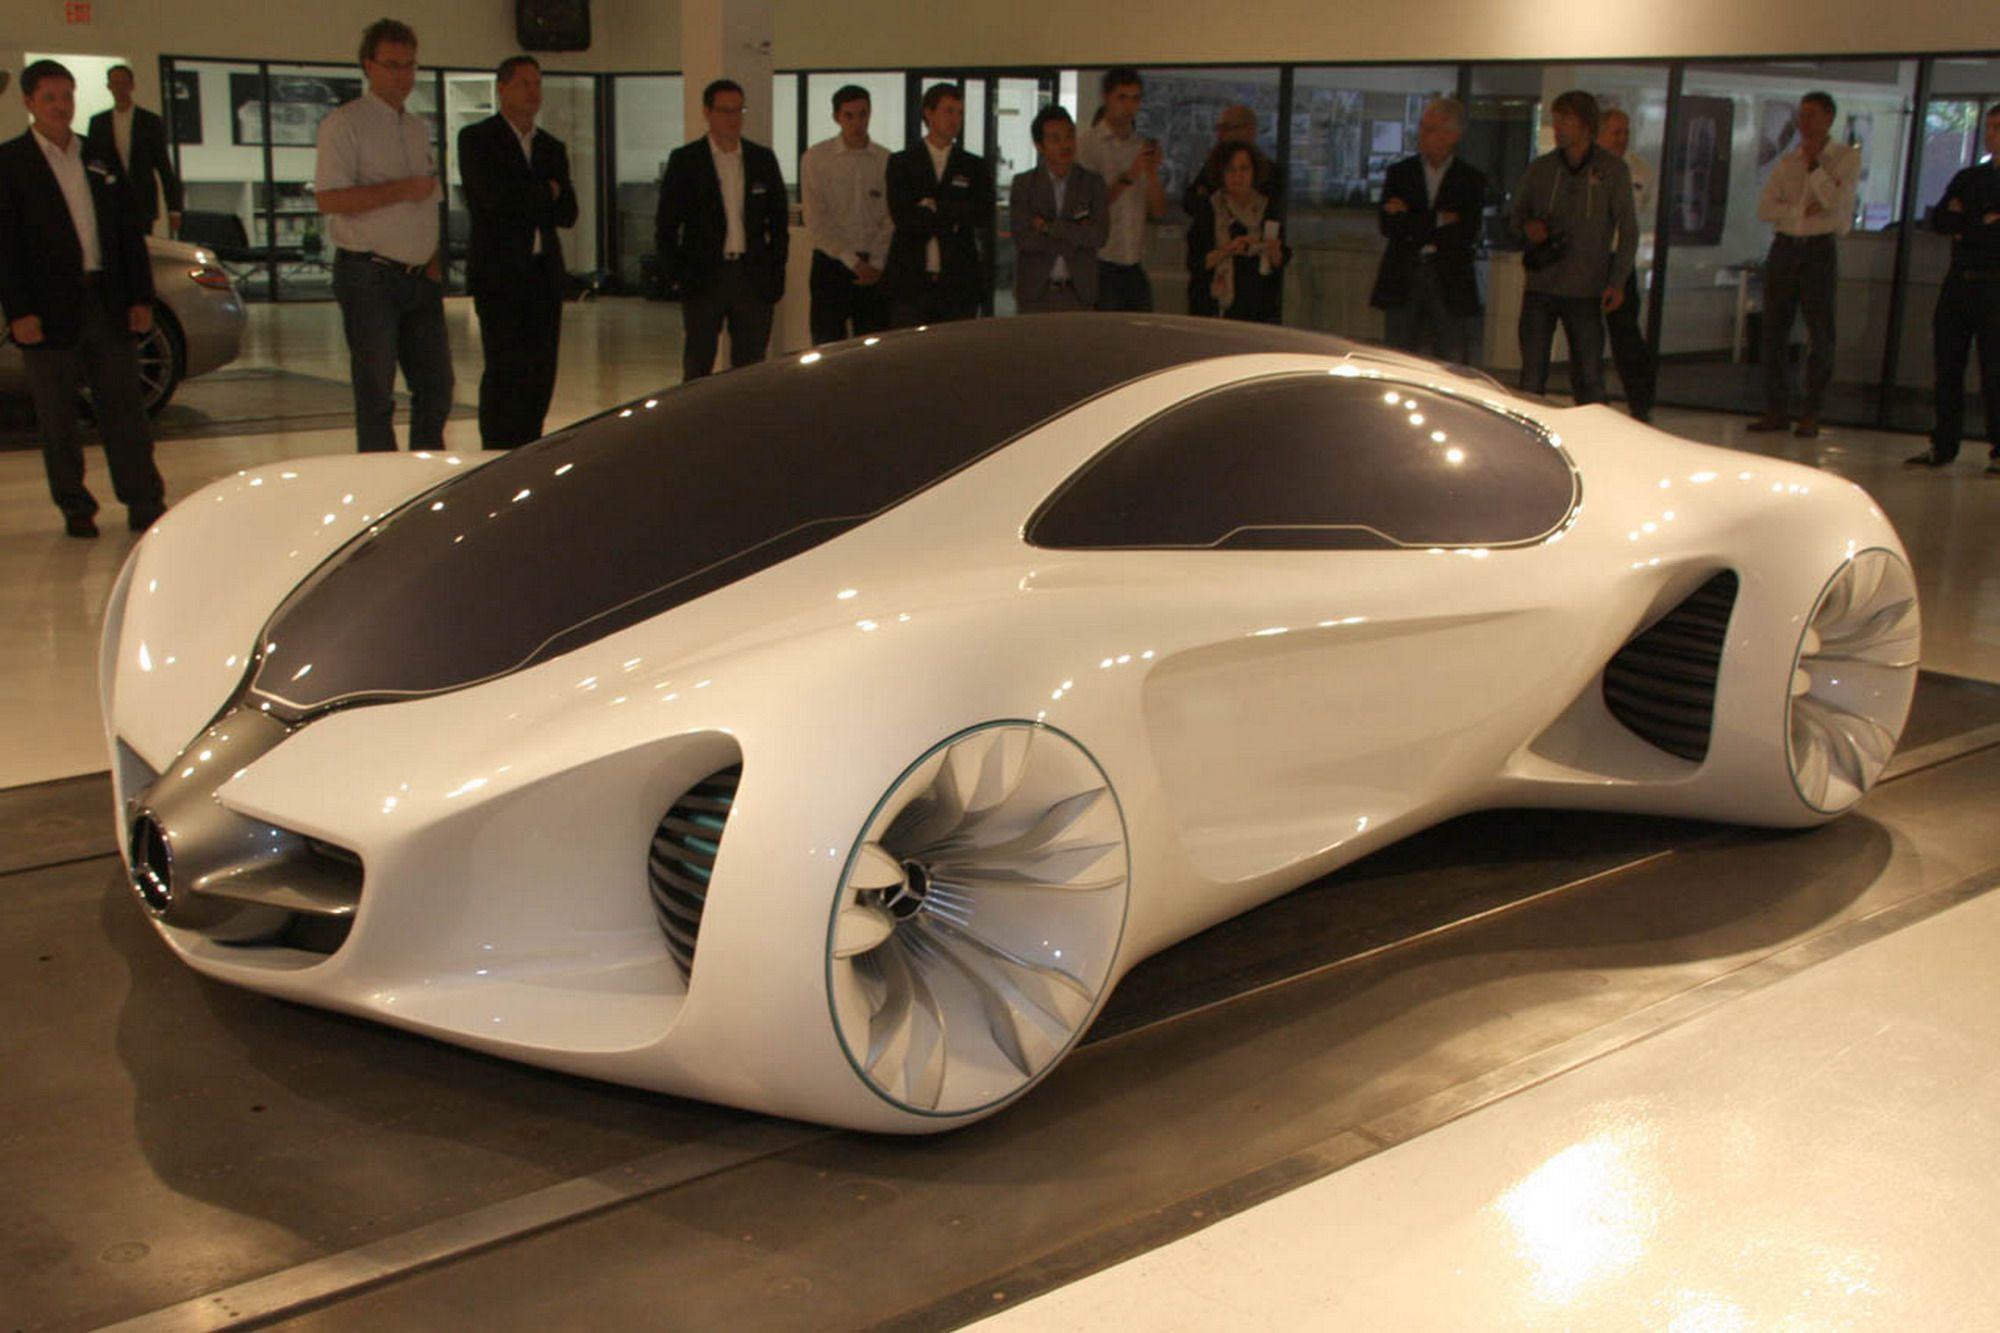 mercedes benz 2050 biome concept car. call me when these hit market